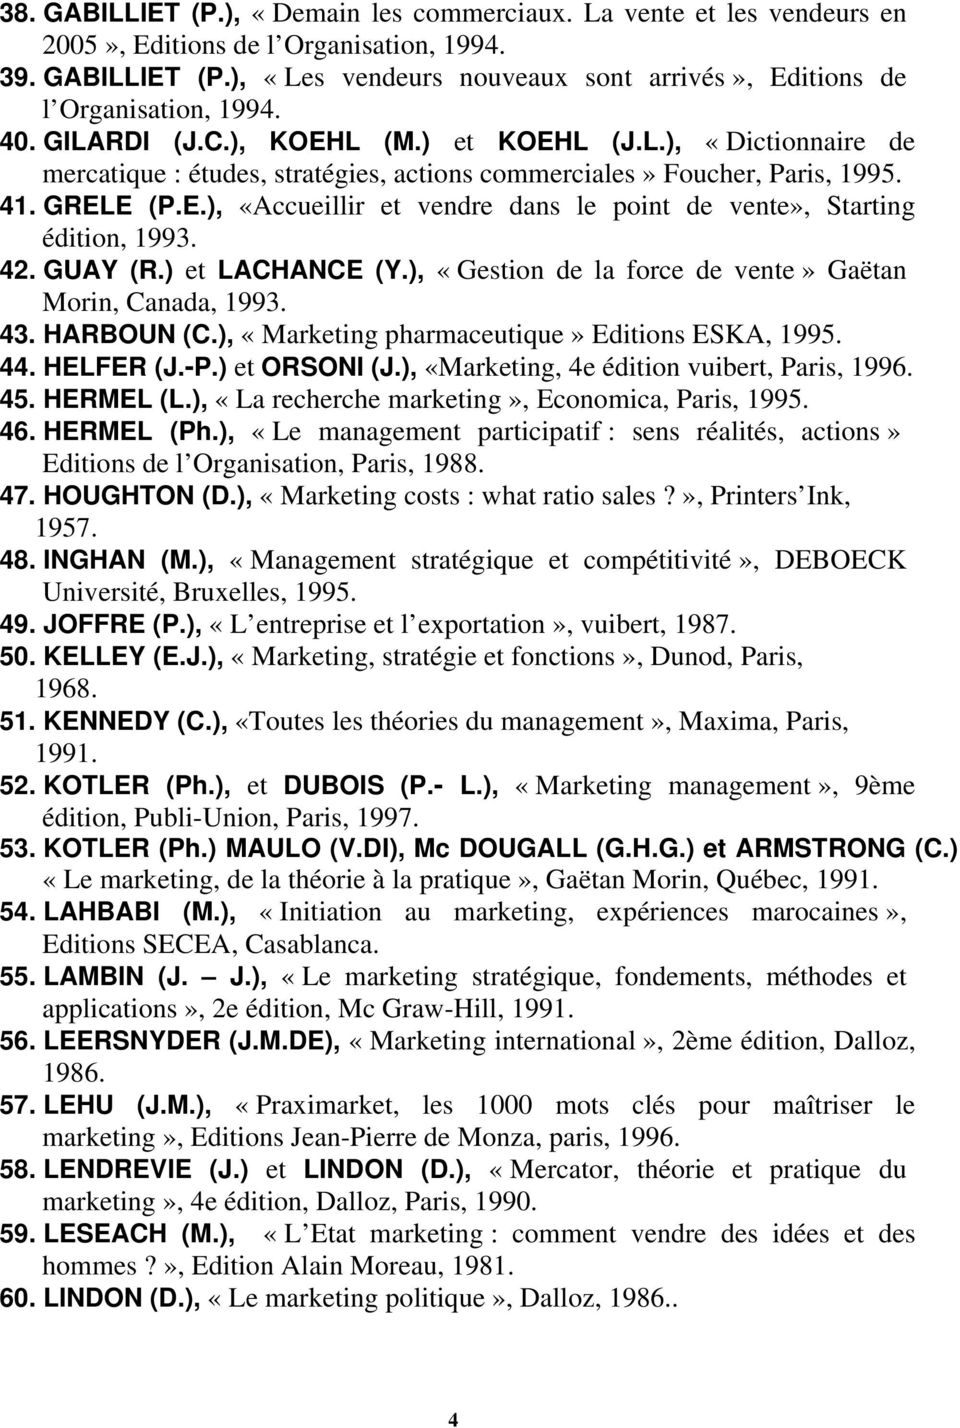 42..GUAY (R.) et LACHANCE (Y.), «Gestion de la force de vente» Gaëtan Morin, Canada, 1993. 43. HARBOUN (C.), «Marketing pharmaceutique» Editions ESKA, 1995. 44..HELFER (J.-P.) et ORSONI (J.